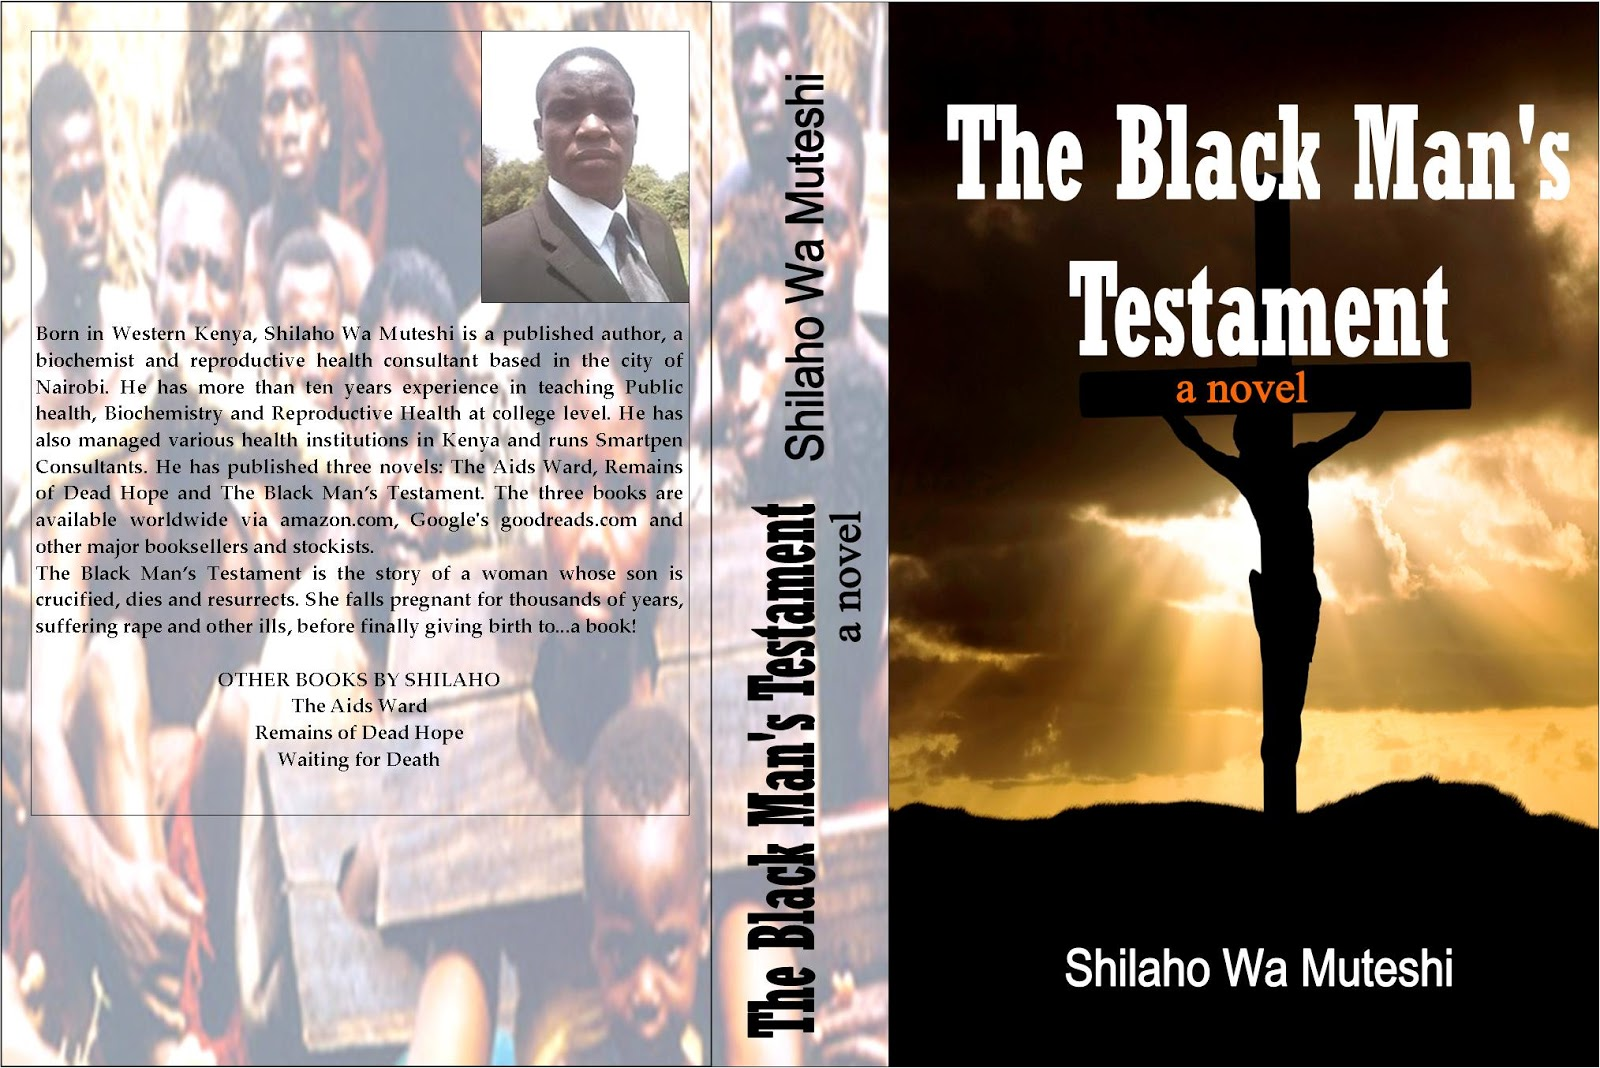 The black man's testament